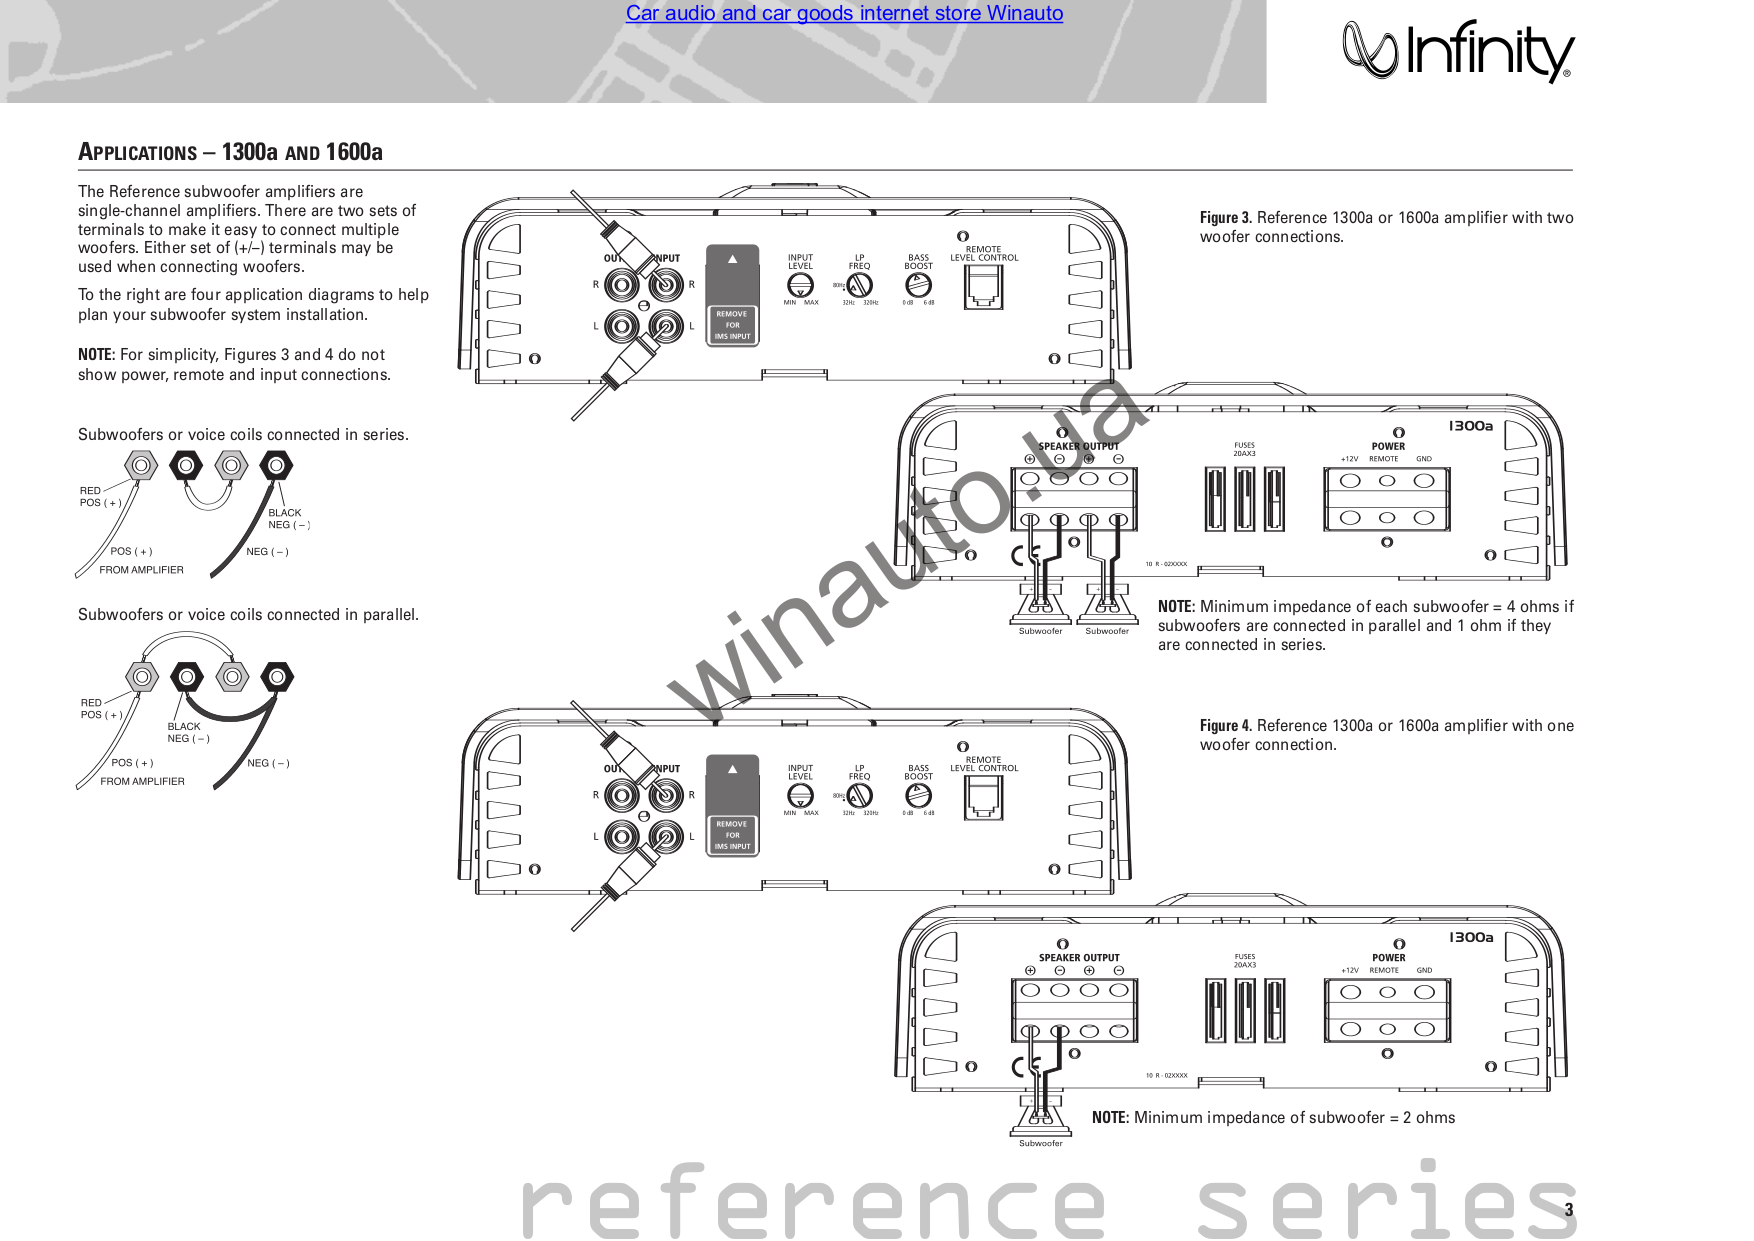 pdf manual for infinity car amplifier reference 5350a